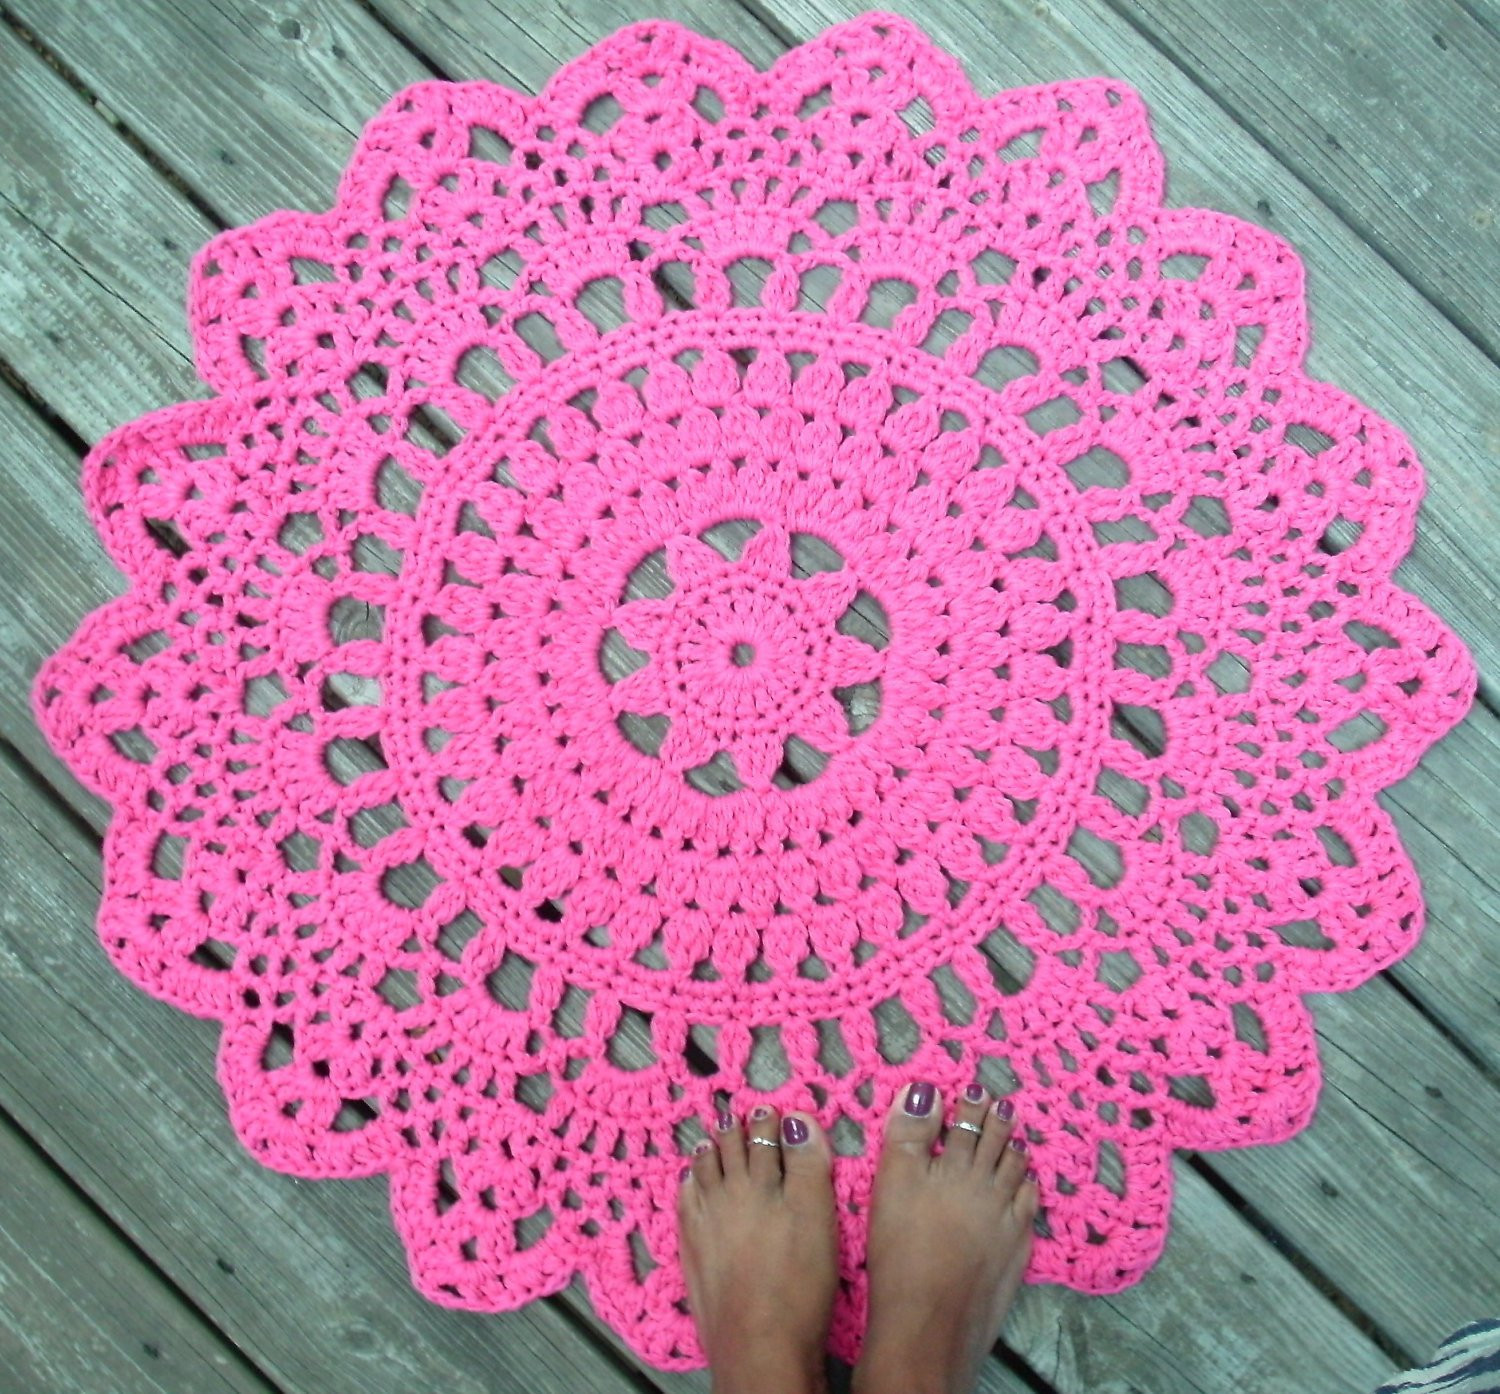 Crochet Circle Rug Awesome Hot Pink Cotton Crochet Doily Rug In 30 Circle Lacy Of Amazing 43 Images Crochet Circle Rug